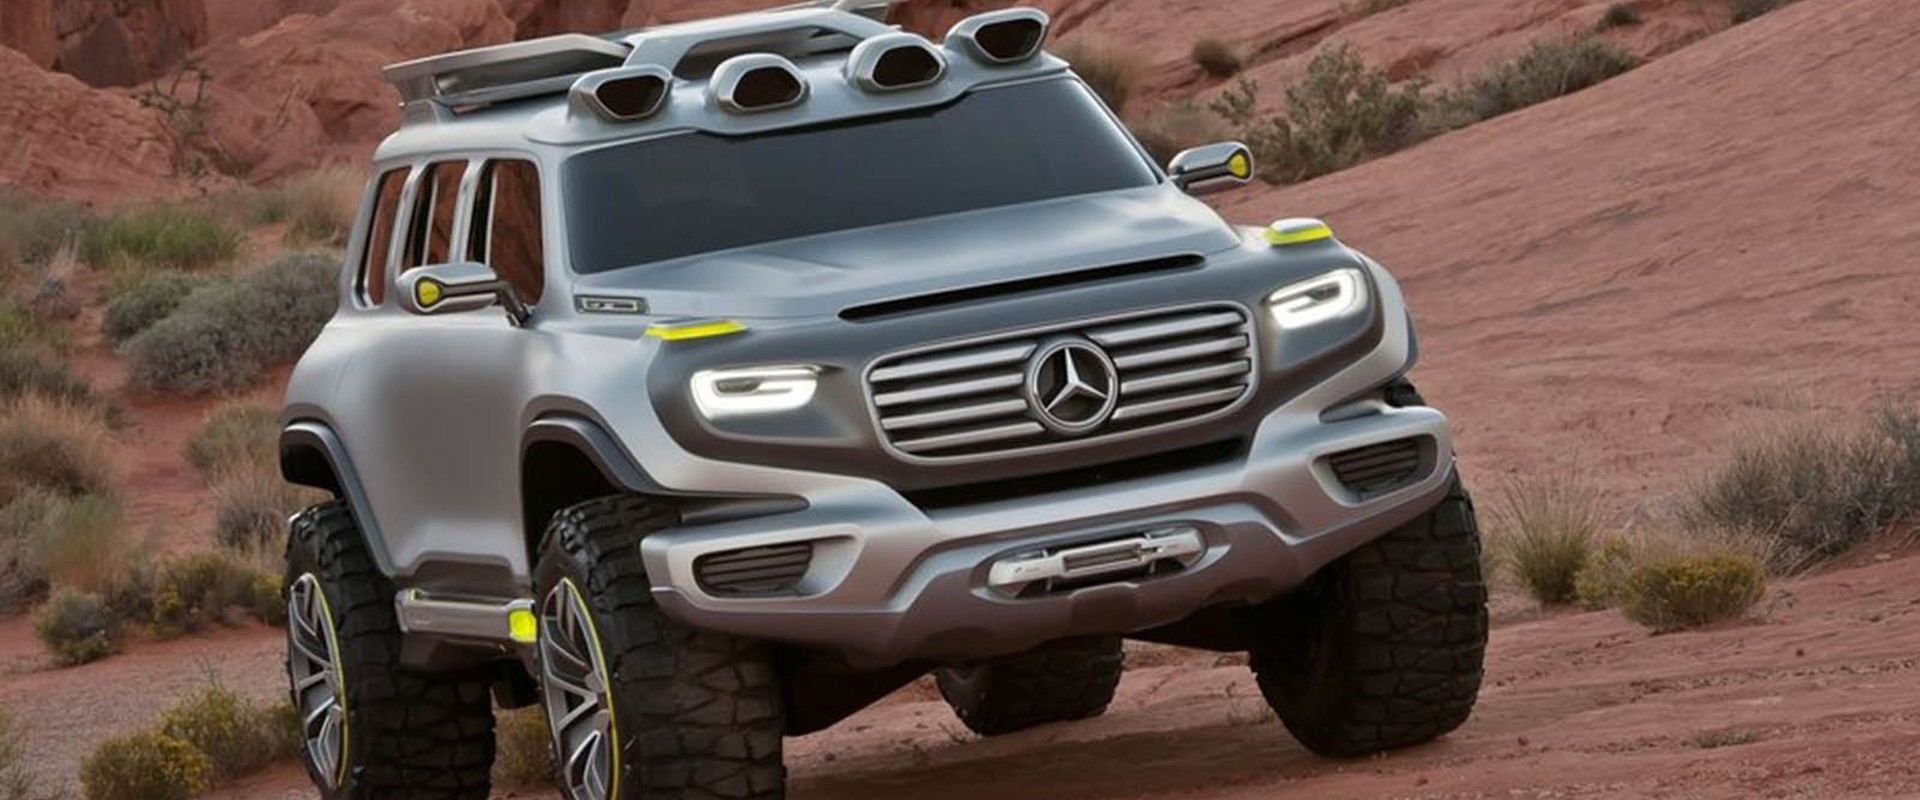 Is Mercedes Planning A Baby G Wagon? - CarBuzz